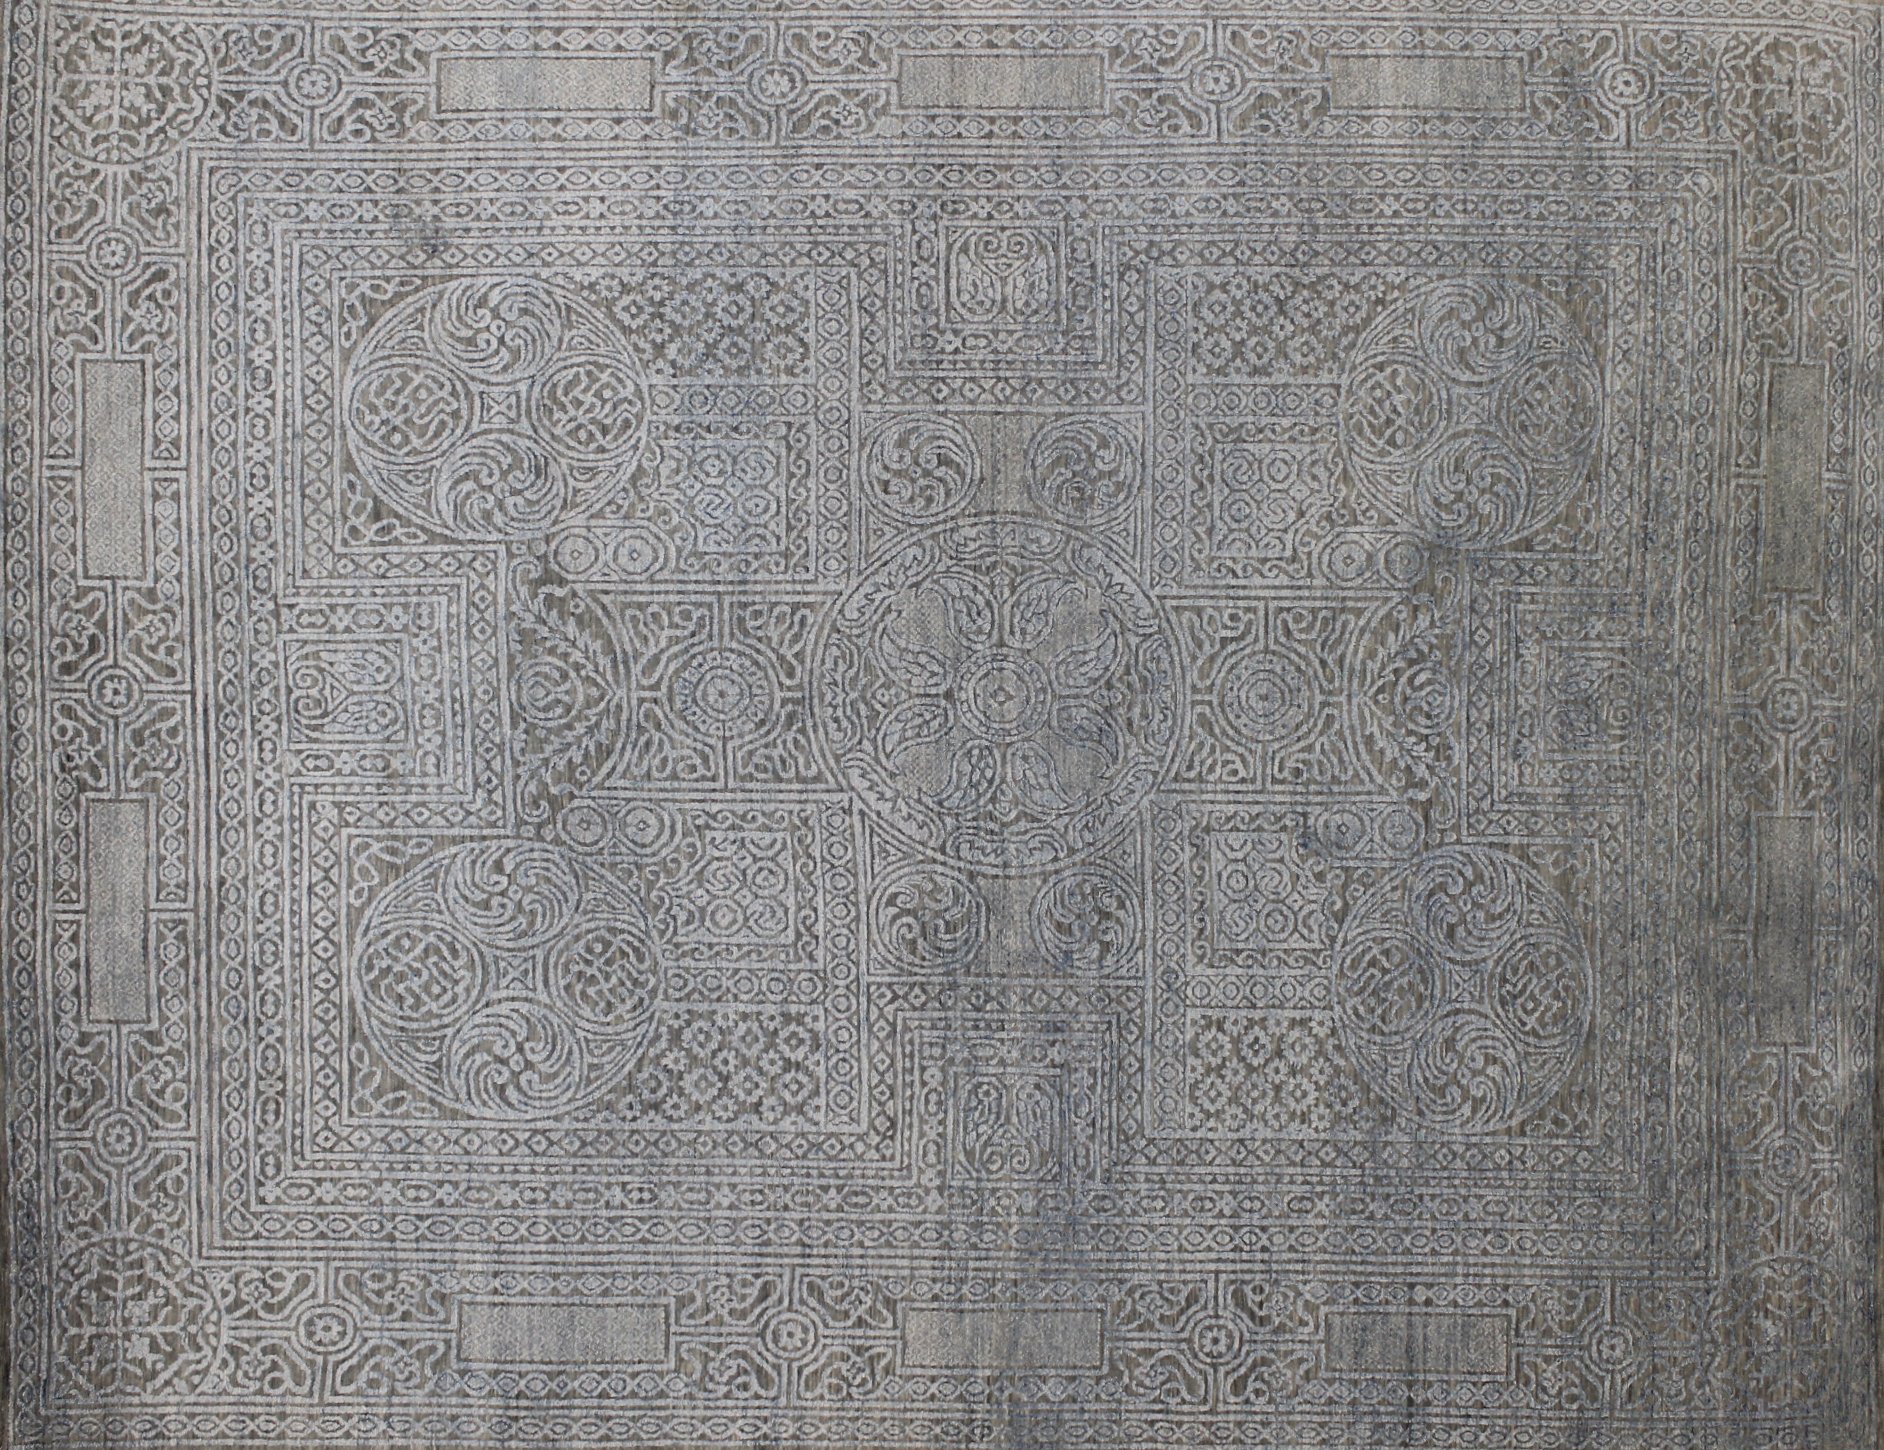 8x10 Transitional Hand Knotted Wool & Viscose Area Rug - MR022708